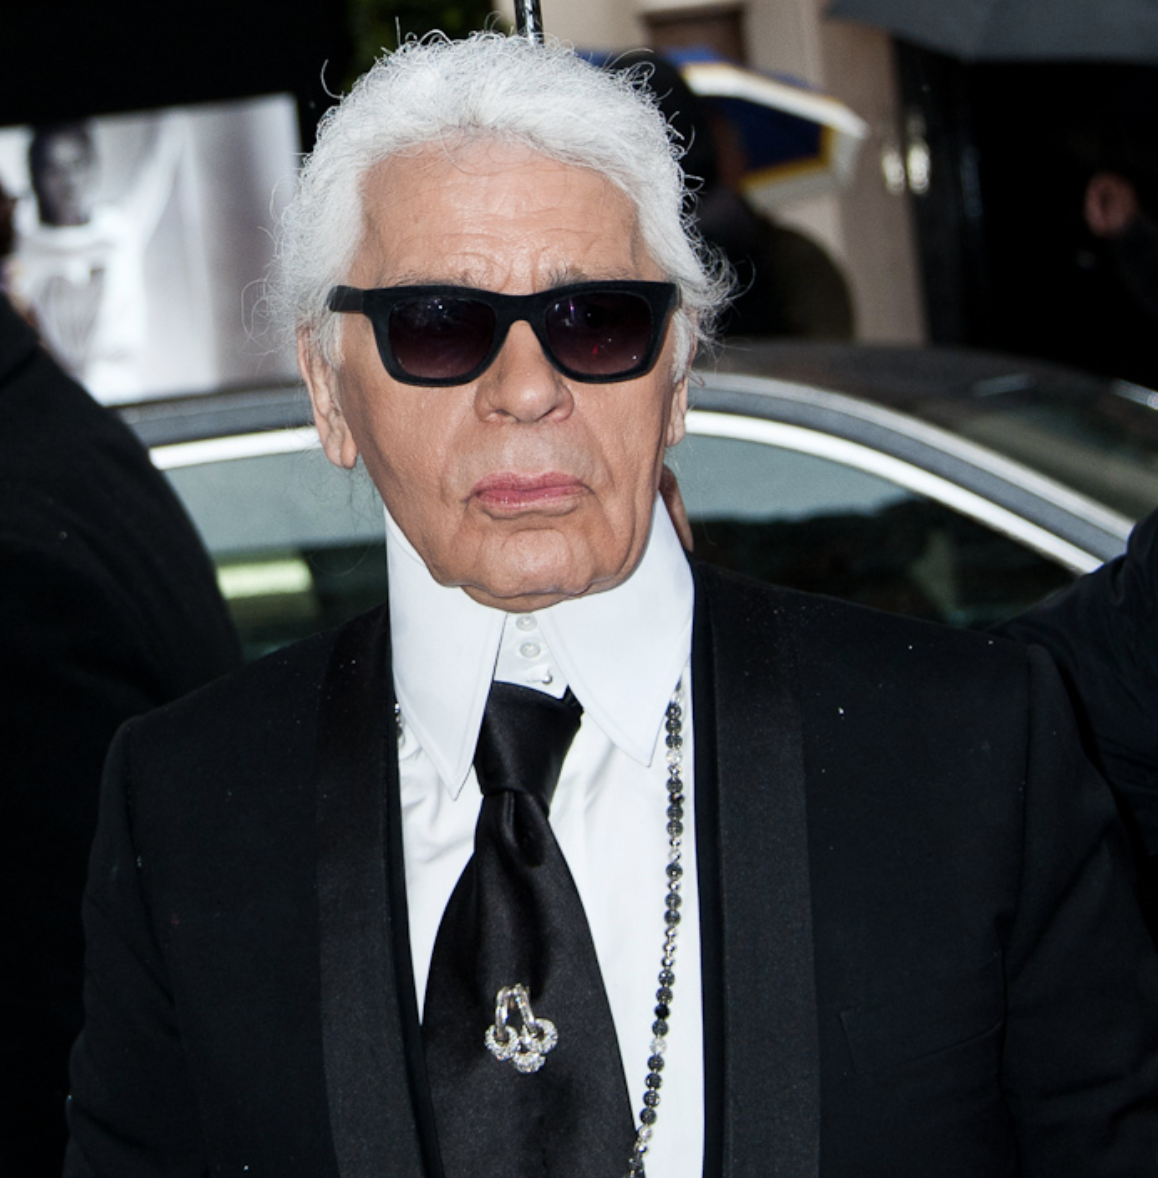 Golocalprov Chanel Fashion Designer Lagerfeld Passes Away At 85